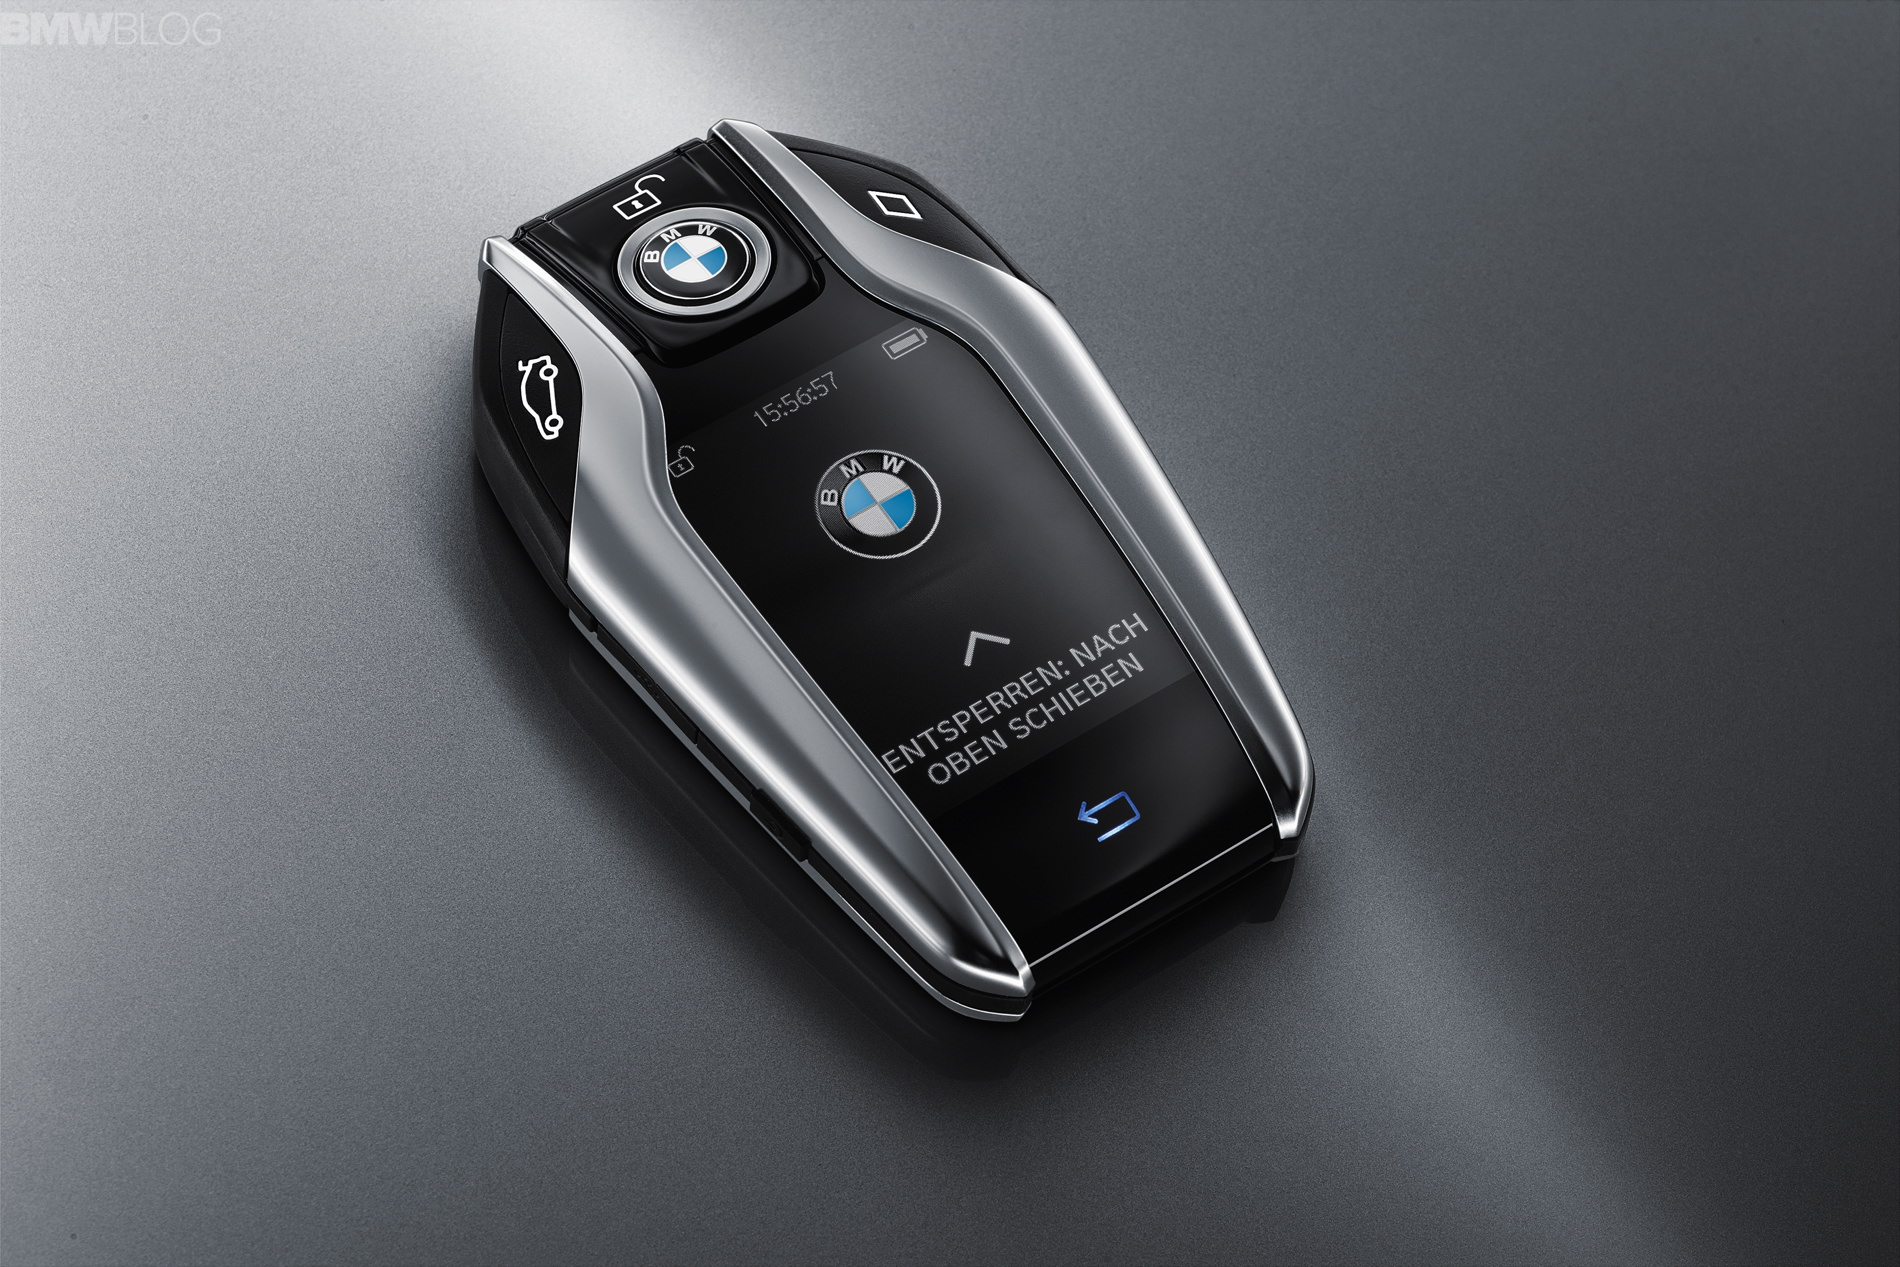 2016 bmw 7 series key fob images 1900x1200 02